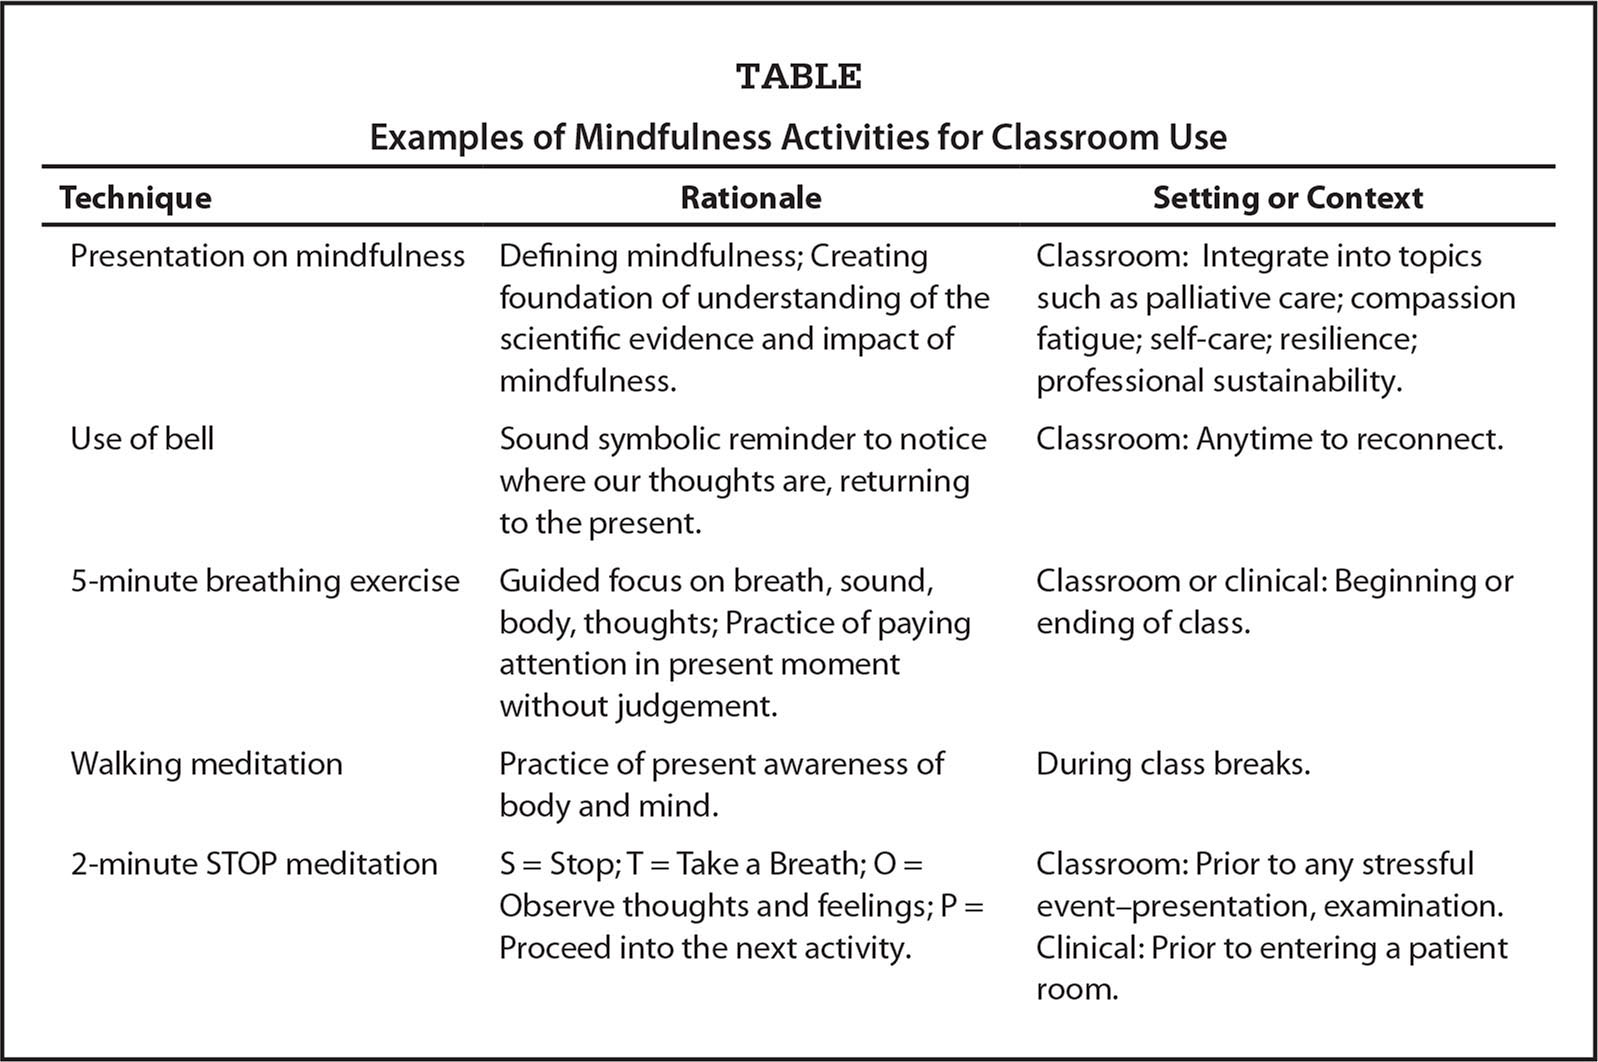 Examples of Mindfulness Activities for Classroom Use